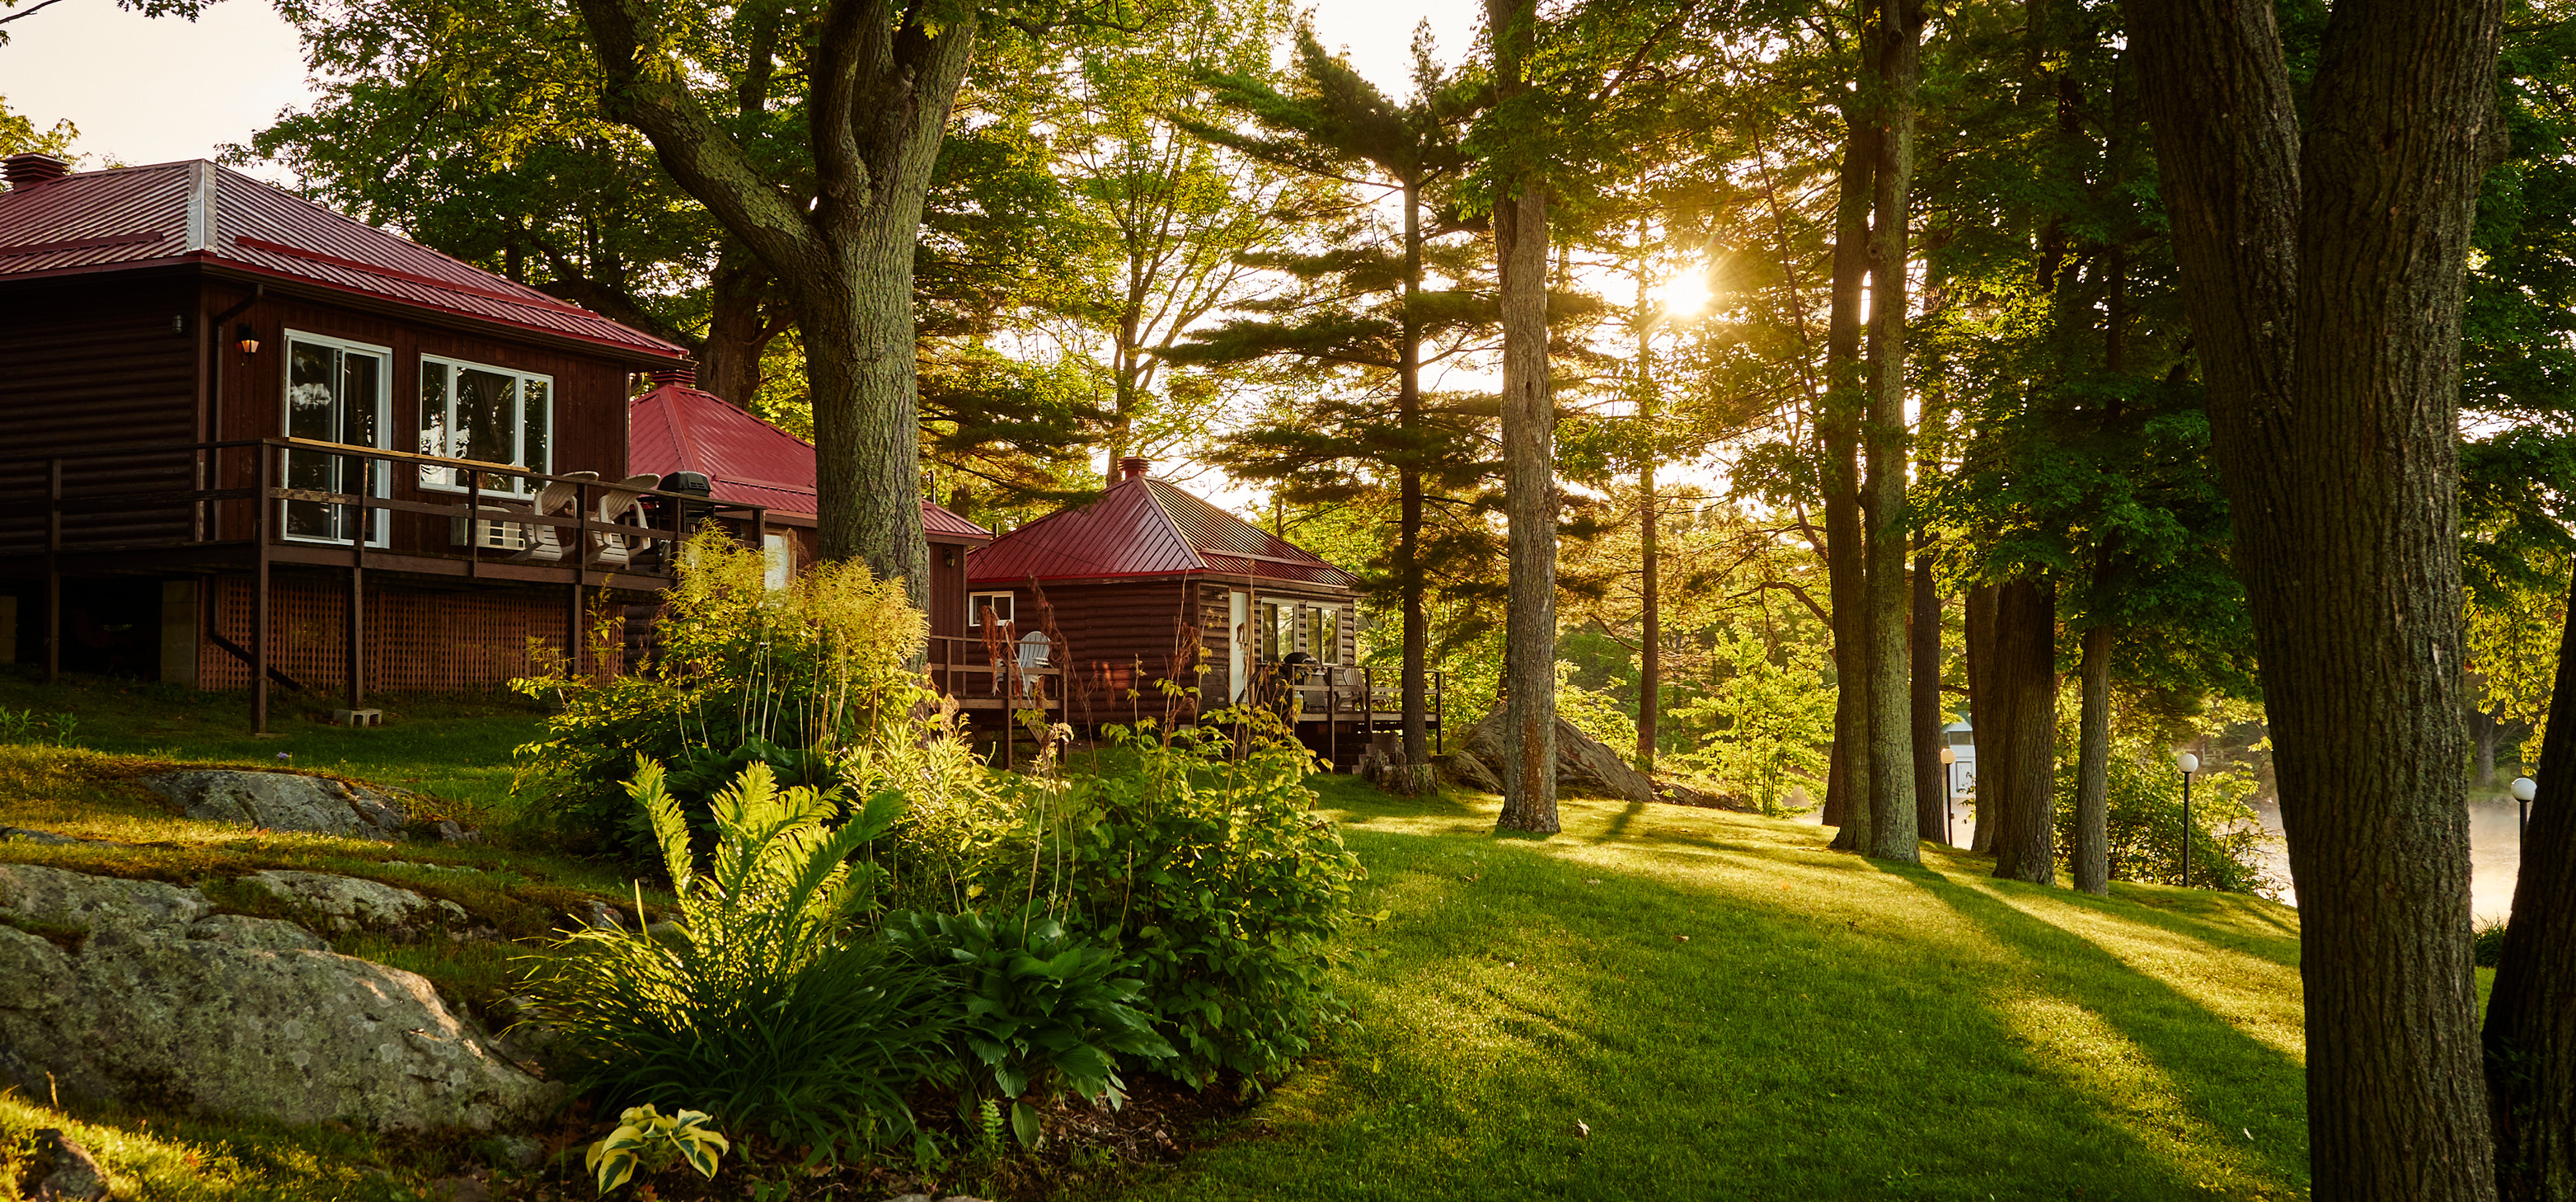 Viamede Resort cottages at sunset surrounded by trees and gardens